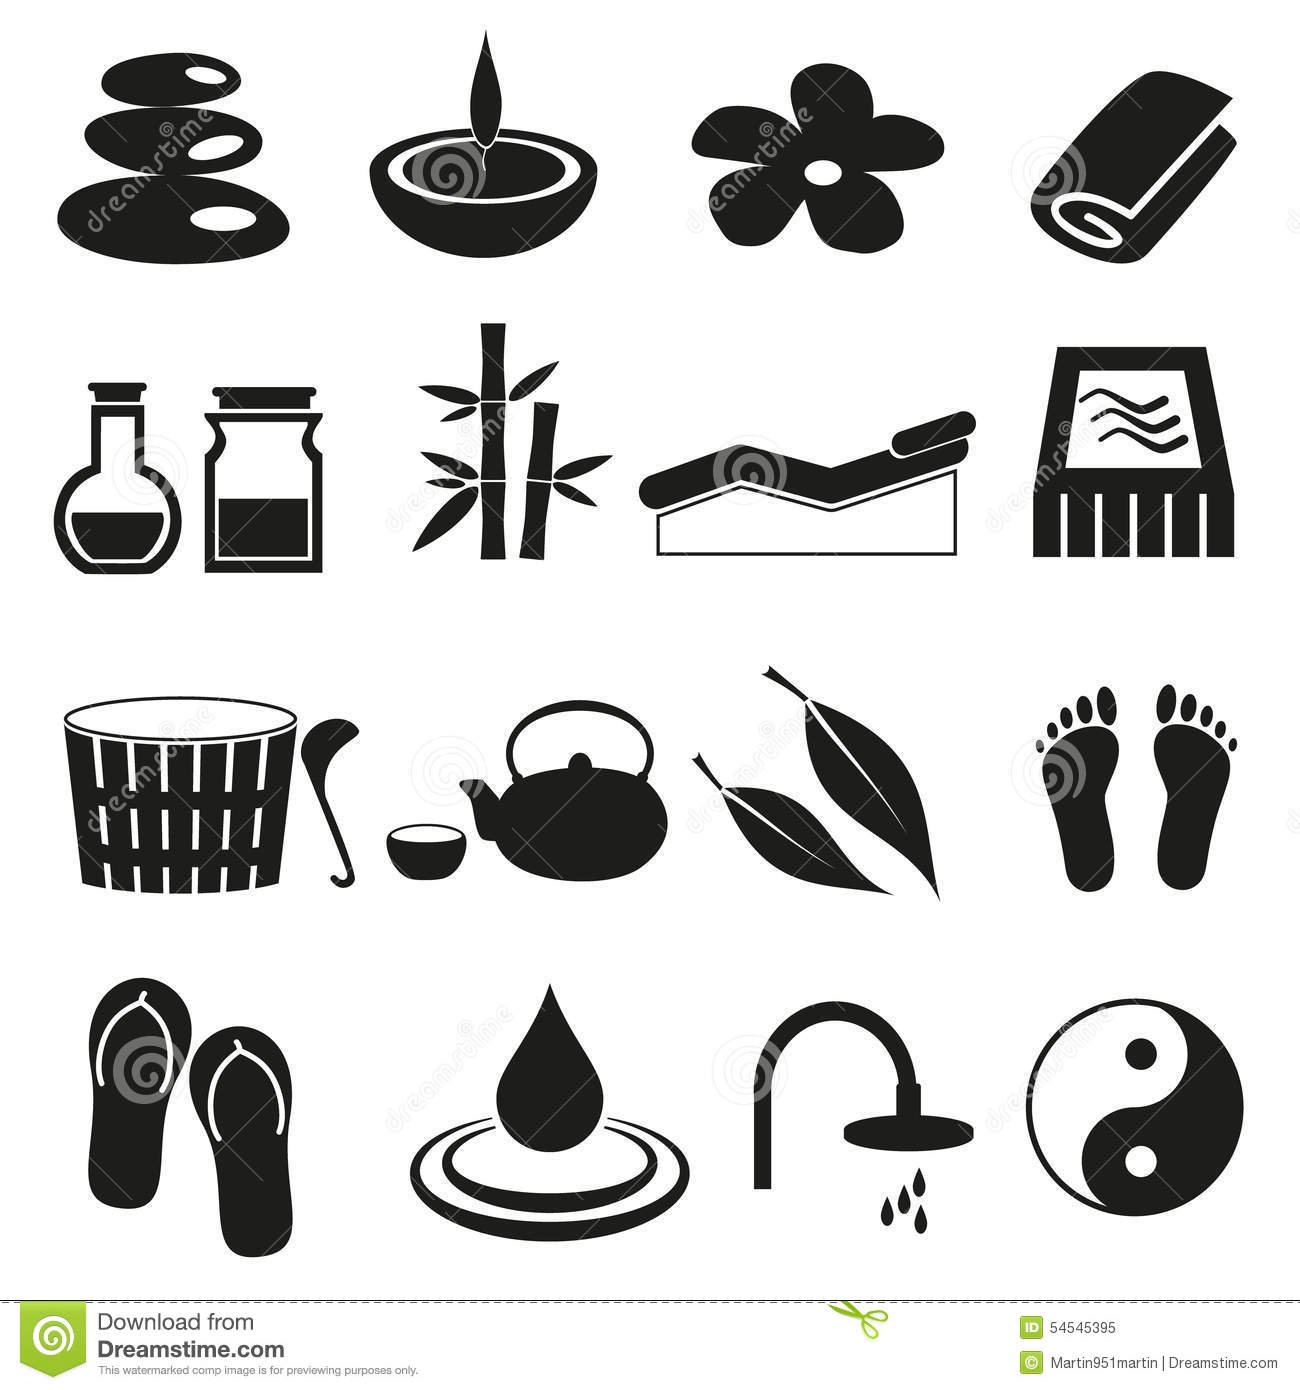 Set Of Simple Icons For Search Engine Optimization, Web